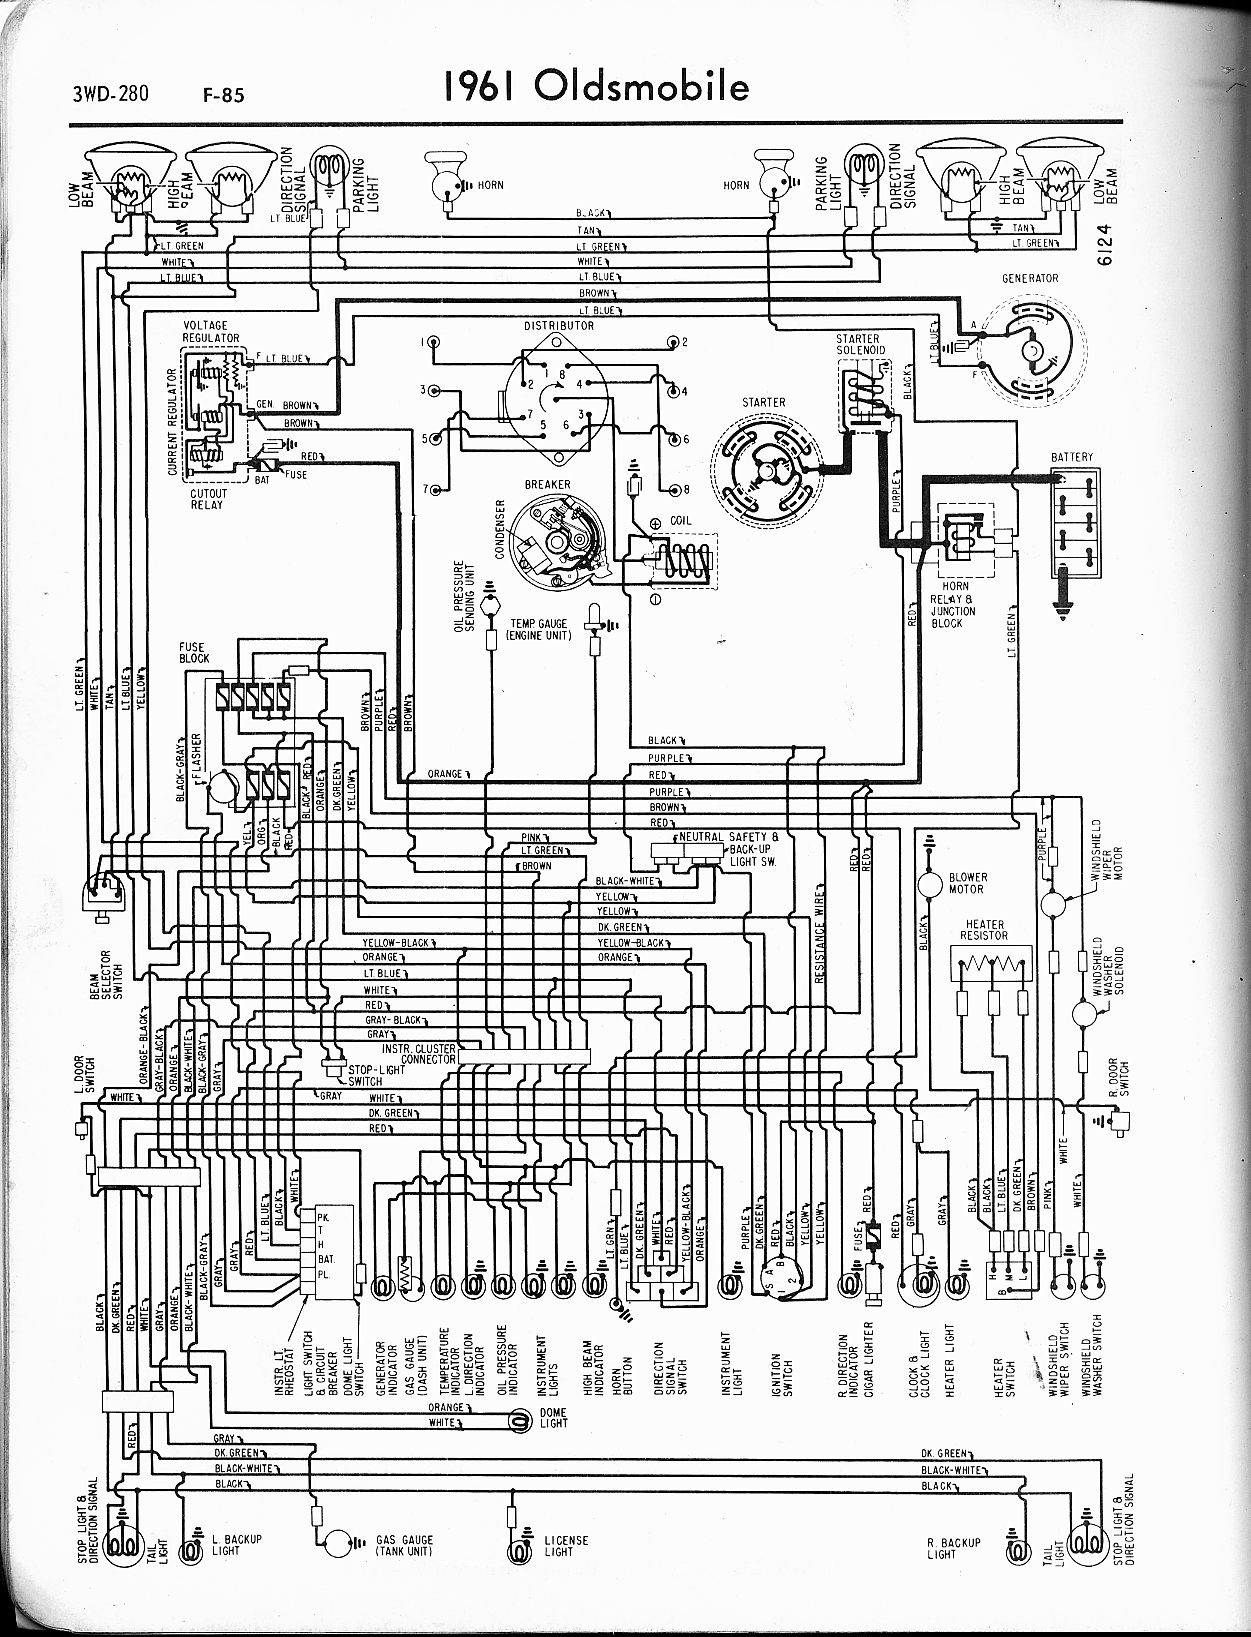 1984 oldsmobile omega wiring diagram example electrical wiring rh huntervalleyhotels co 1969 Oldsmobile Wiring-Diagram 1998 Oldsmobile Wiring-Diagram